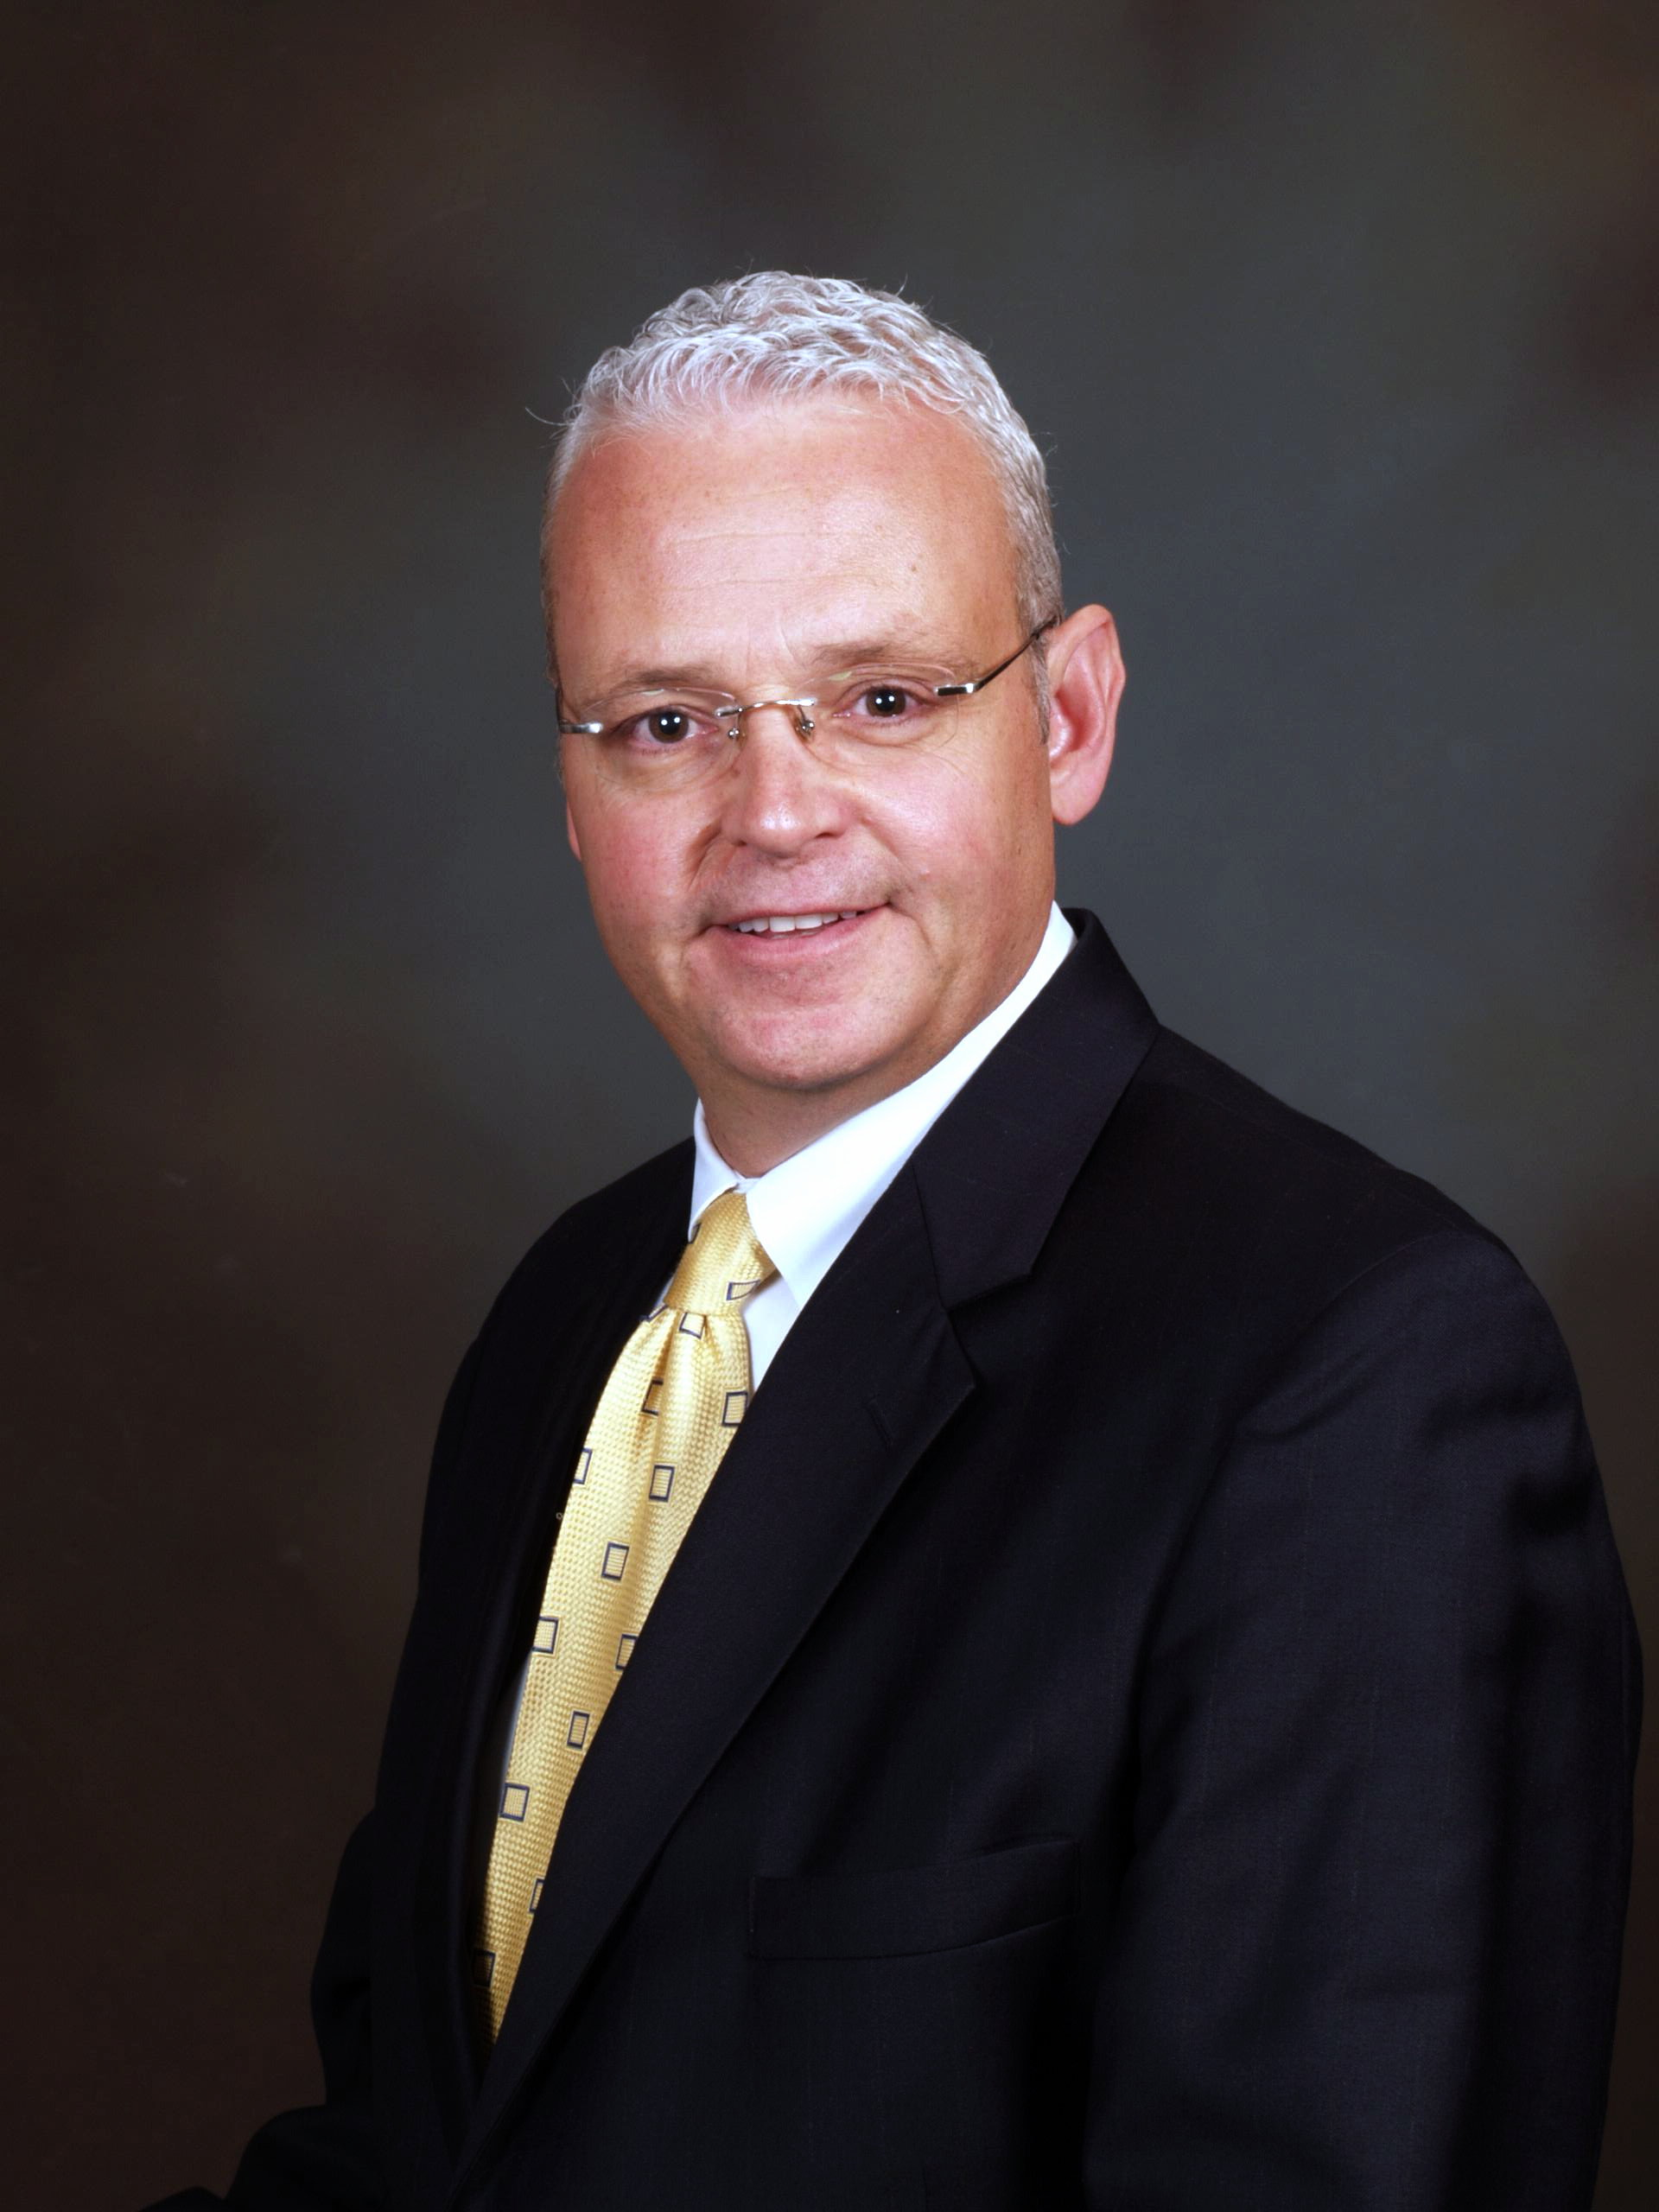 Thomas Ford, financial advisor Cheshire CT